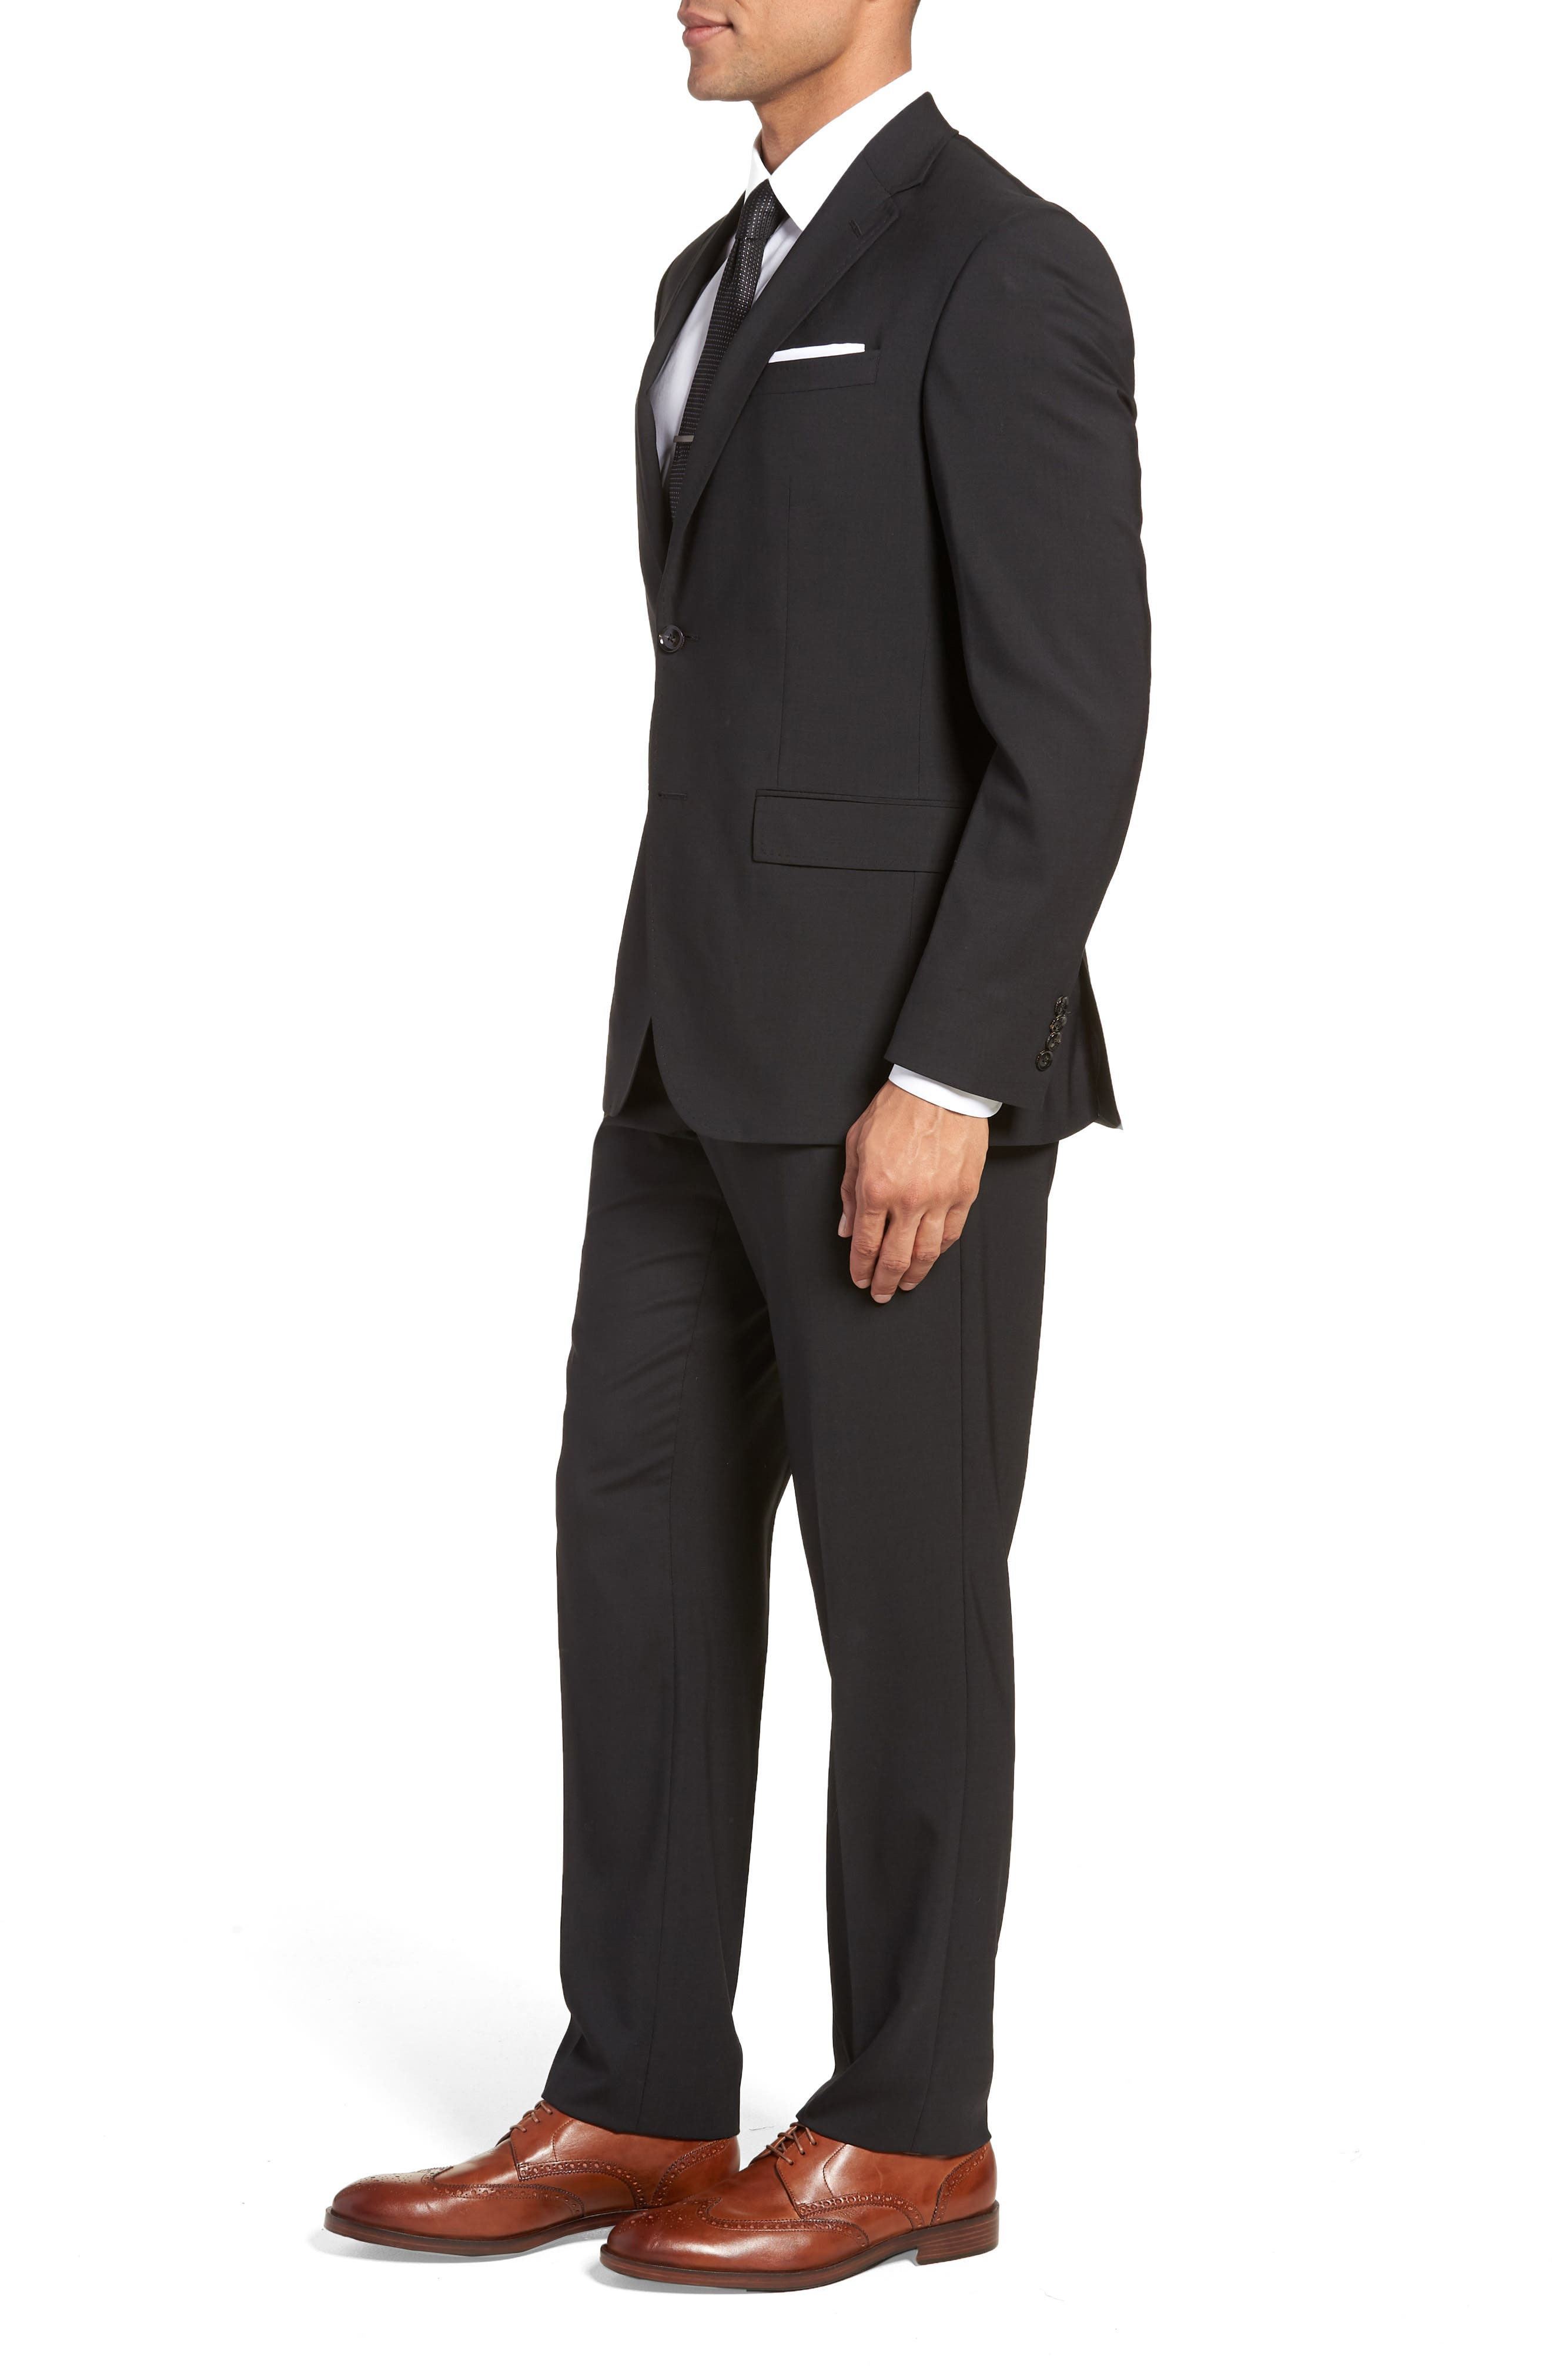 TED BAKER LONDON, Jay Trim Fit Solid Wool Suit, Alternate thumbnail 3, color, BLACK